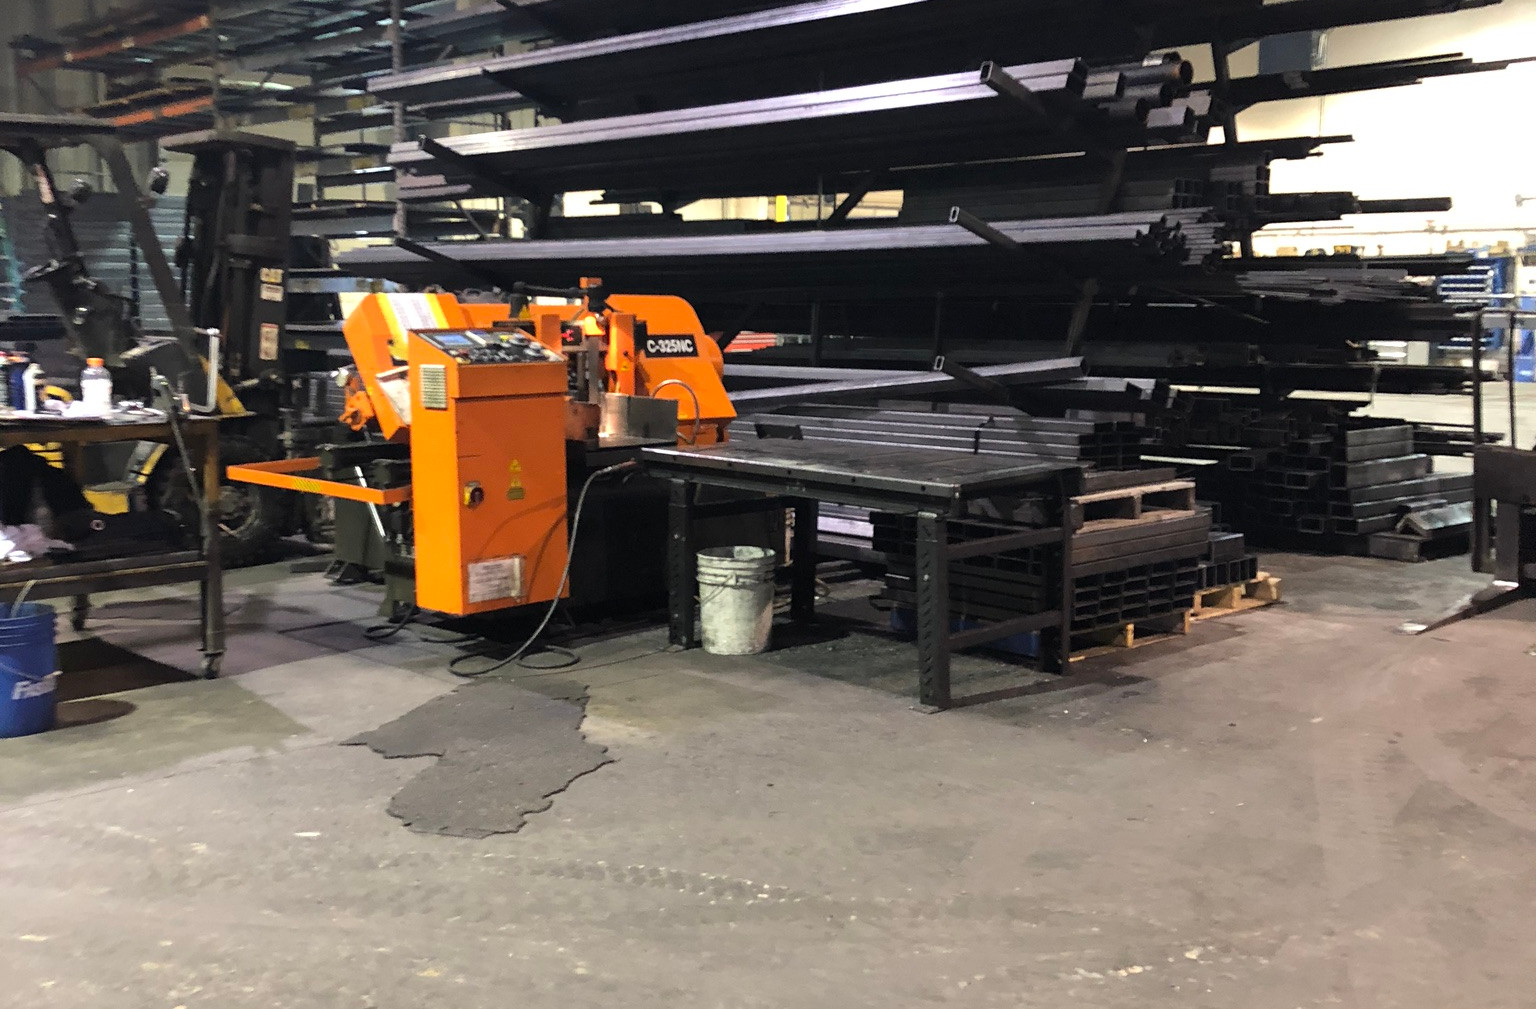 Here is a look at a few of our Shop Capabilities